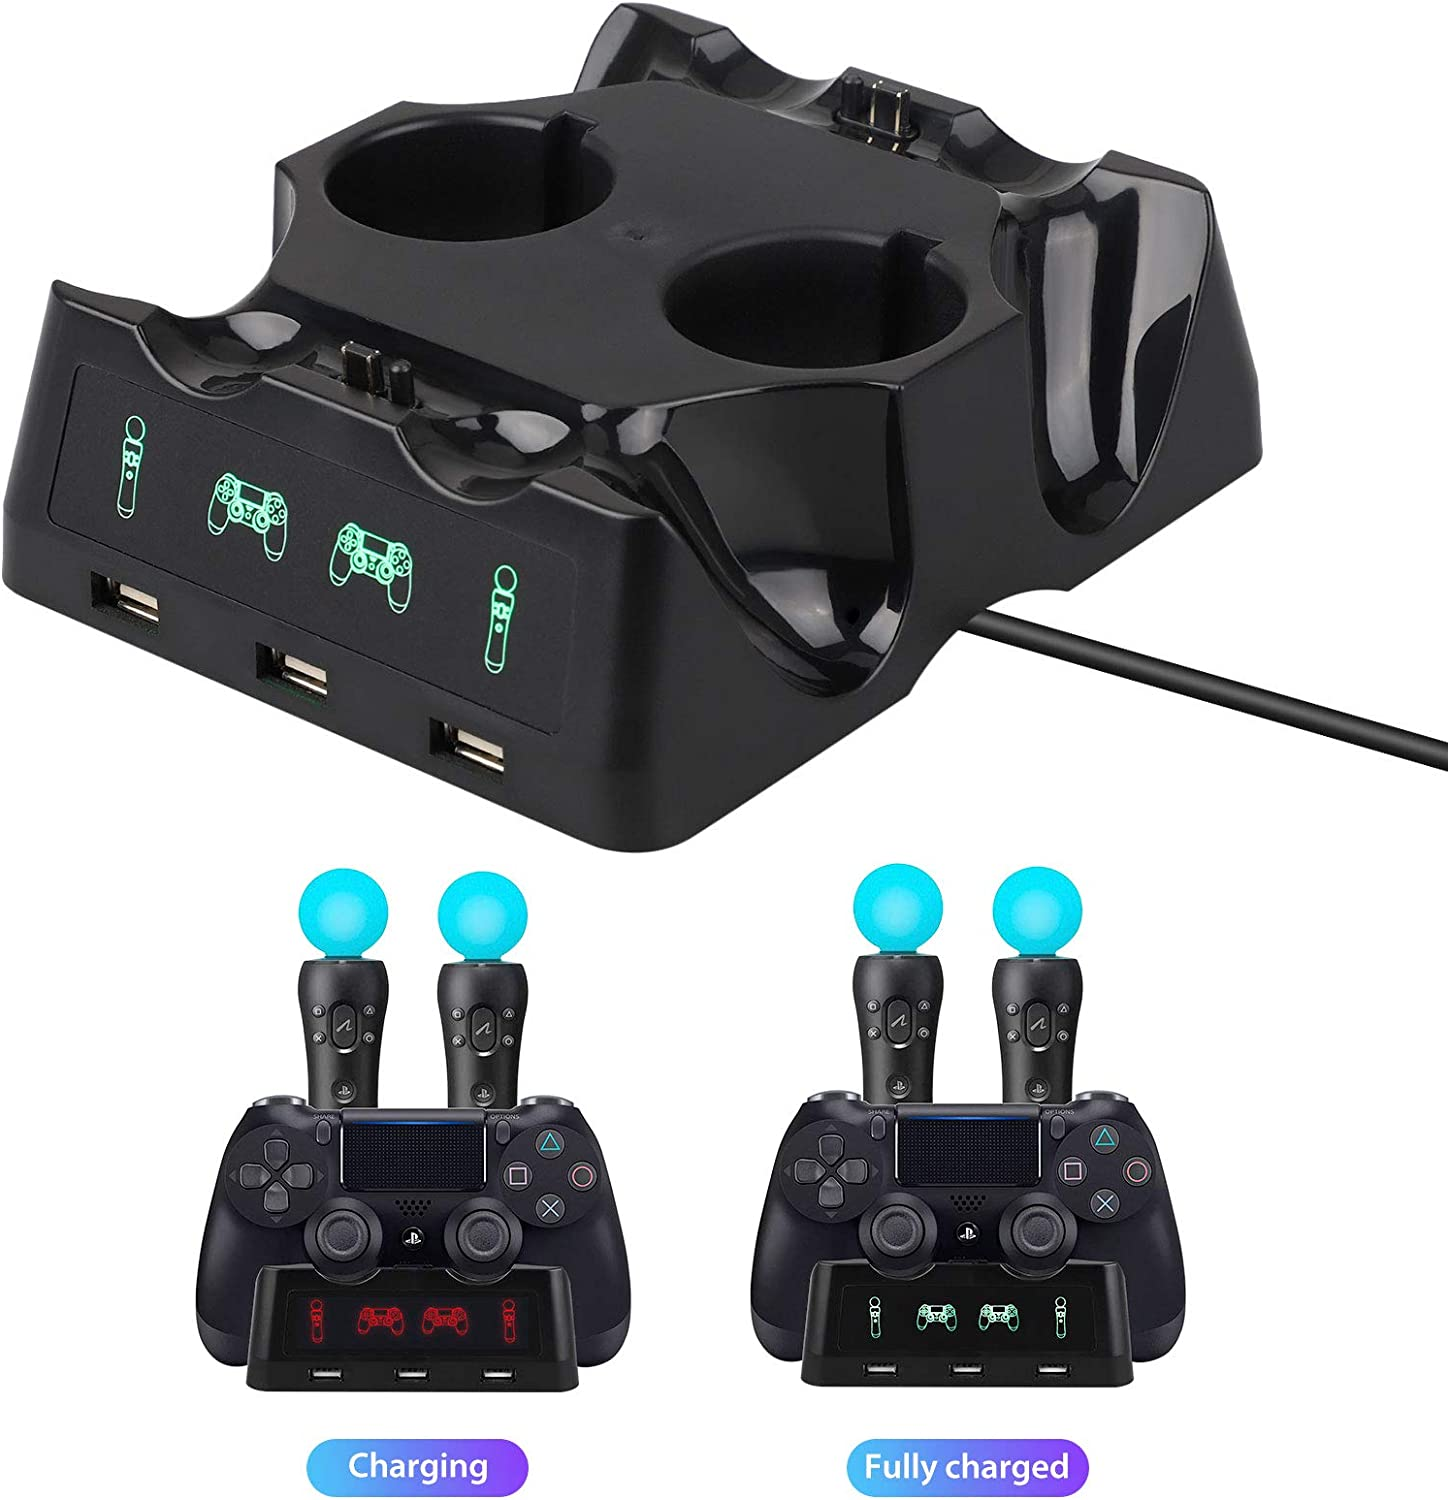 4 USB Charging Station with LED Indicator 4 in 1 Charging Dock Station Desk Charging Station for Playstation PS4 PSVR VR Move AITOO Charging Dock Station for Two PS4//PSVR//Move Motion Controllers